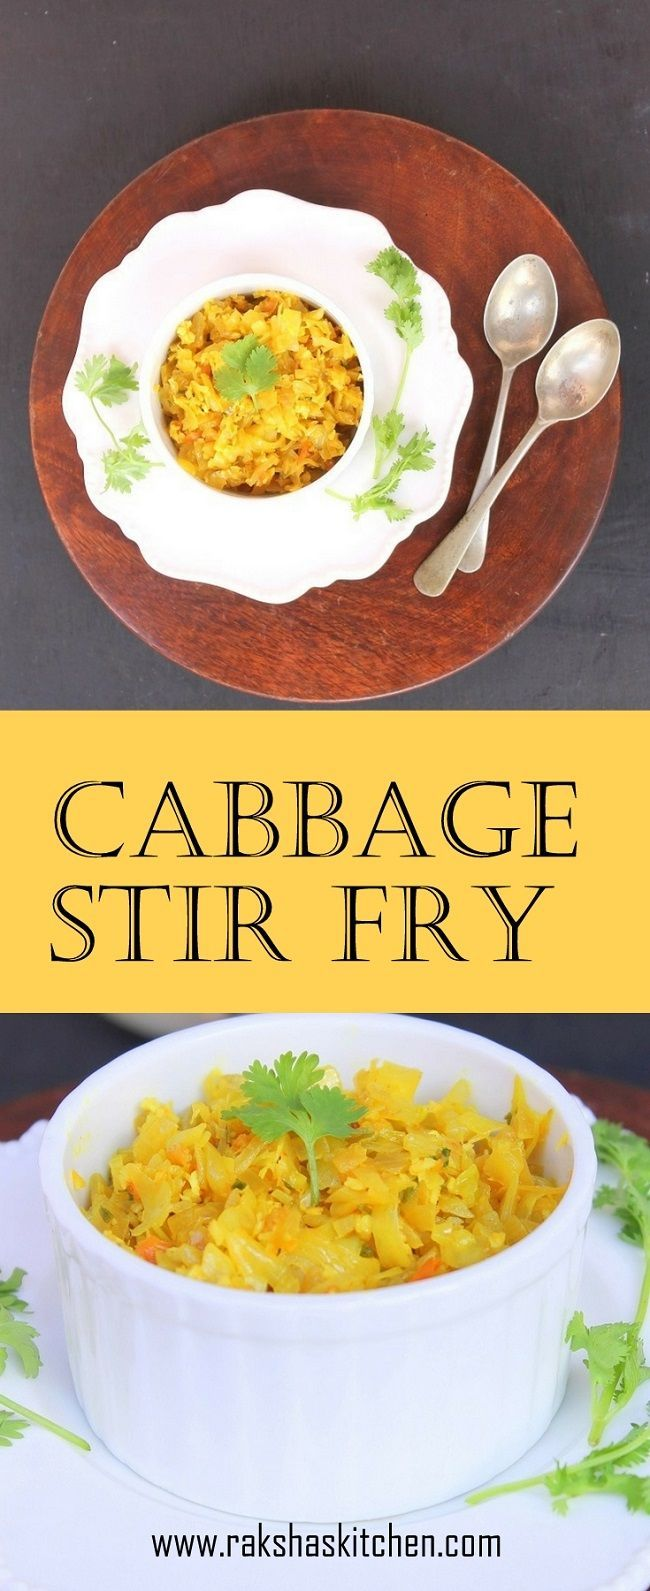 Cabbage Stir Fry Delicious stir fry made with cabbage #recipes #cabbagerecipes #stirfry #meals #lunch #dinner